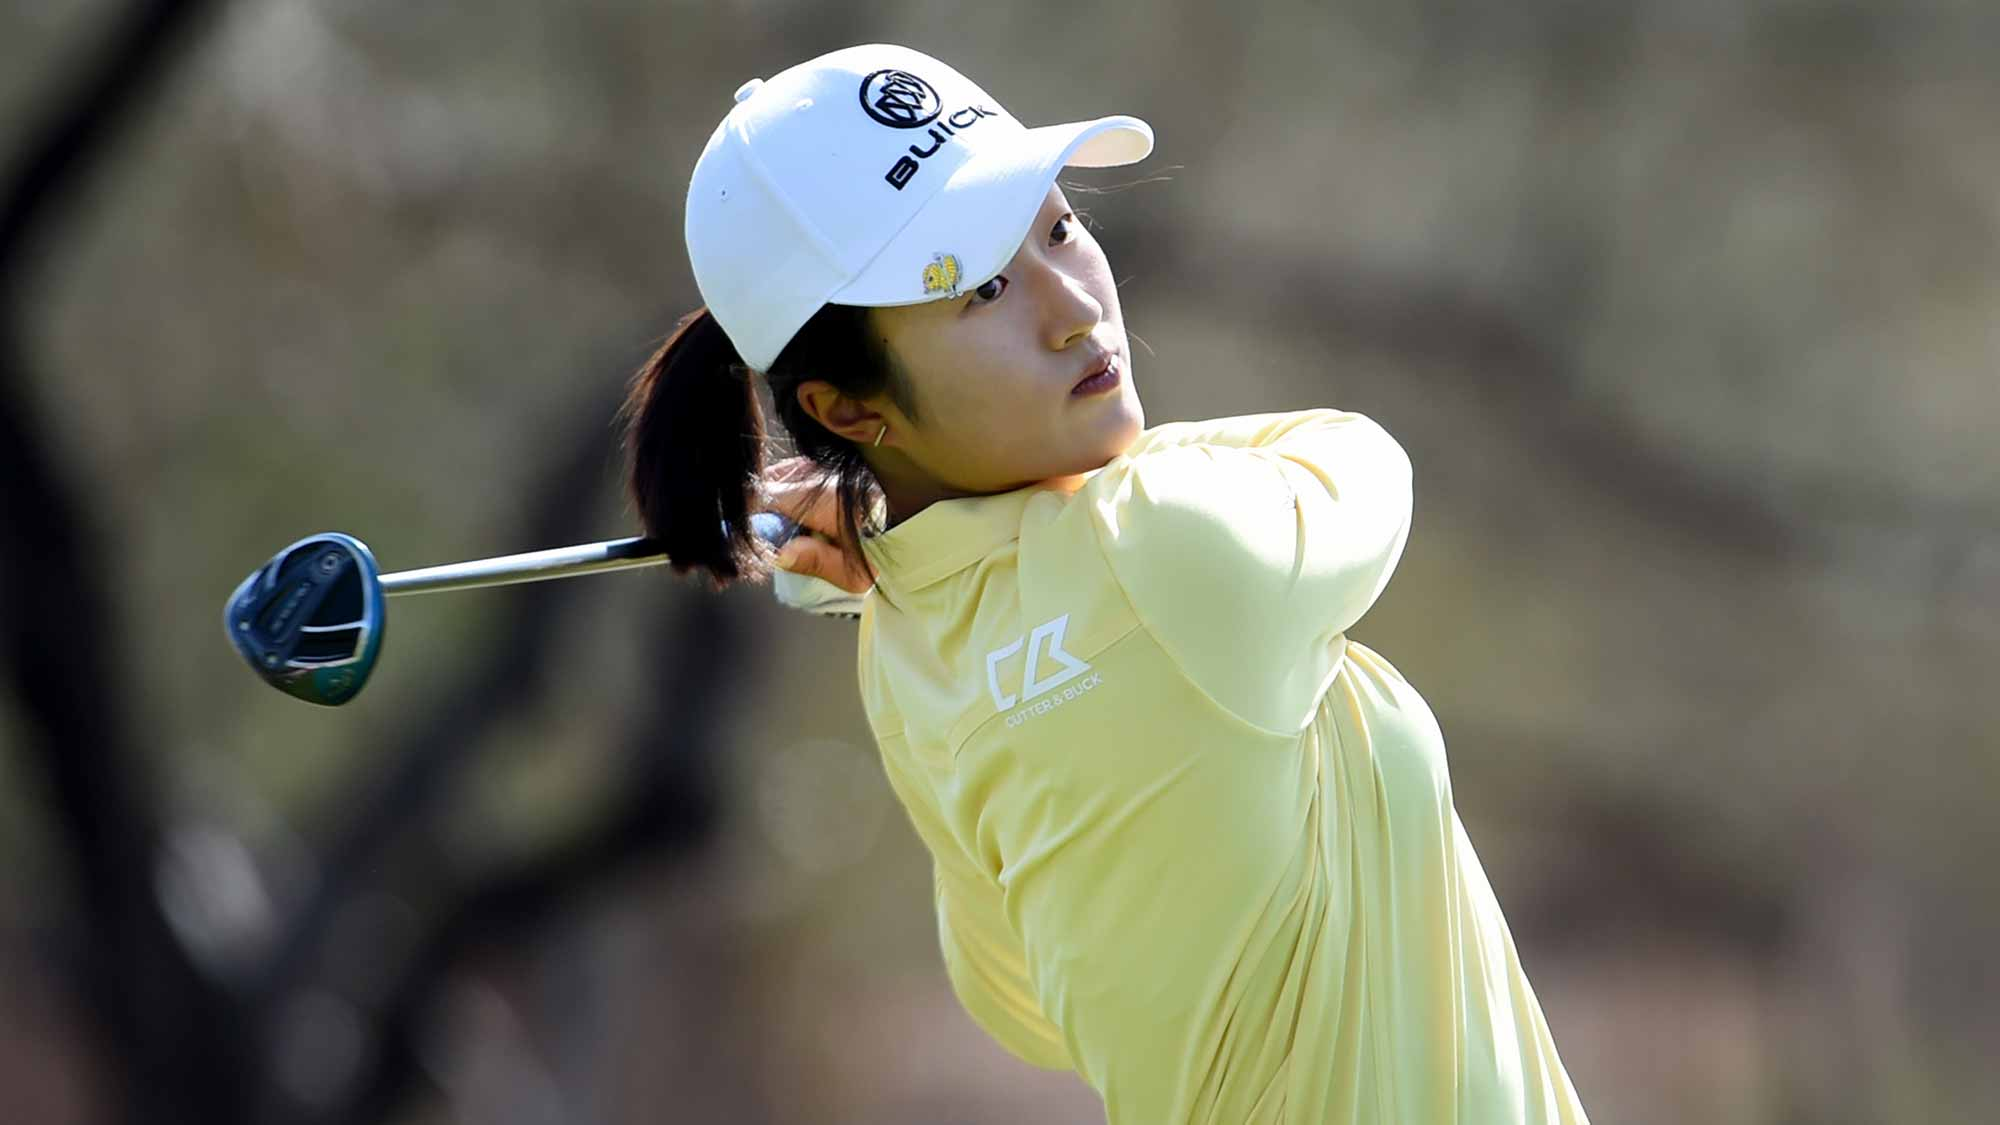 Yu Liu of China hits her tee shot on the 13th hole during the final round of the Bank Of Hope Founders Cup at the Wildfire Golf Club on March 24, 2019 in Phoenix, Arizona